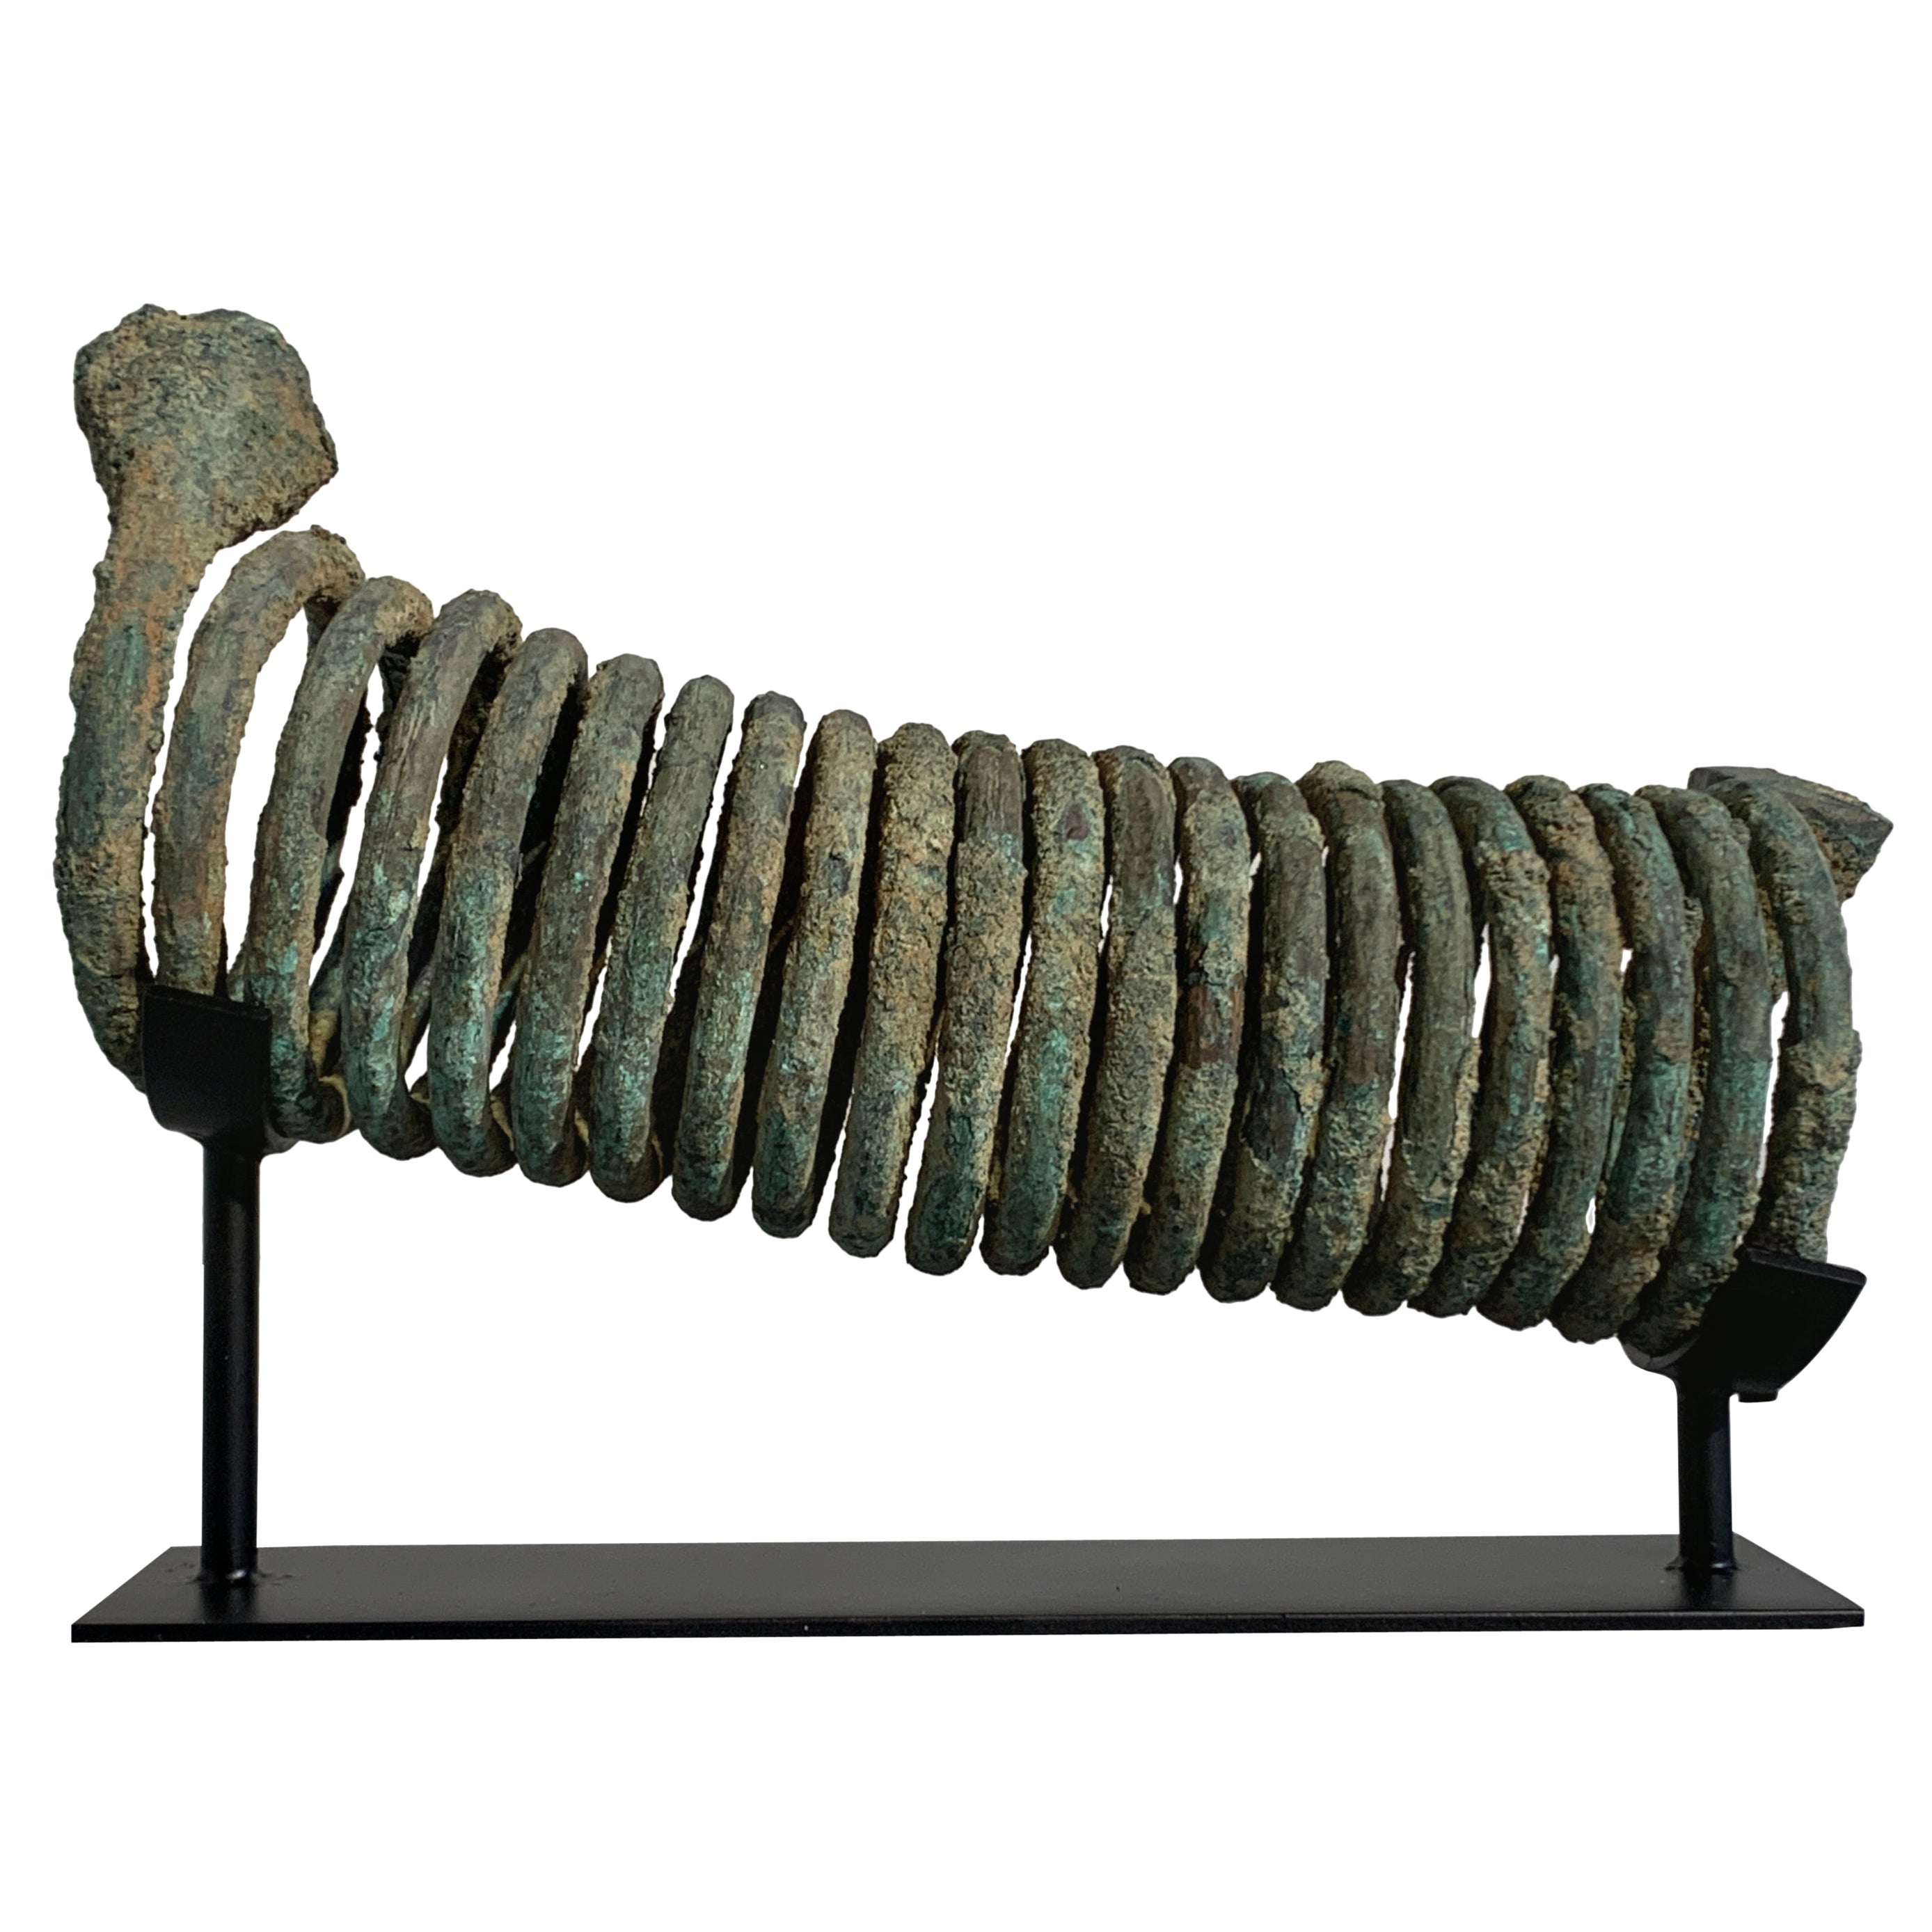 African Igbo Coiled Copper Manilla Currency, 20th Century, Nigeria